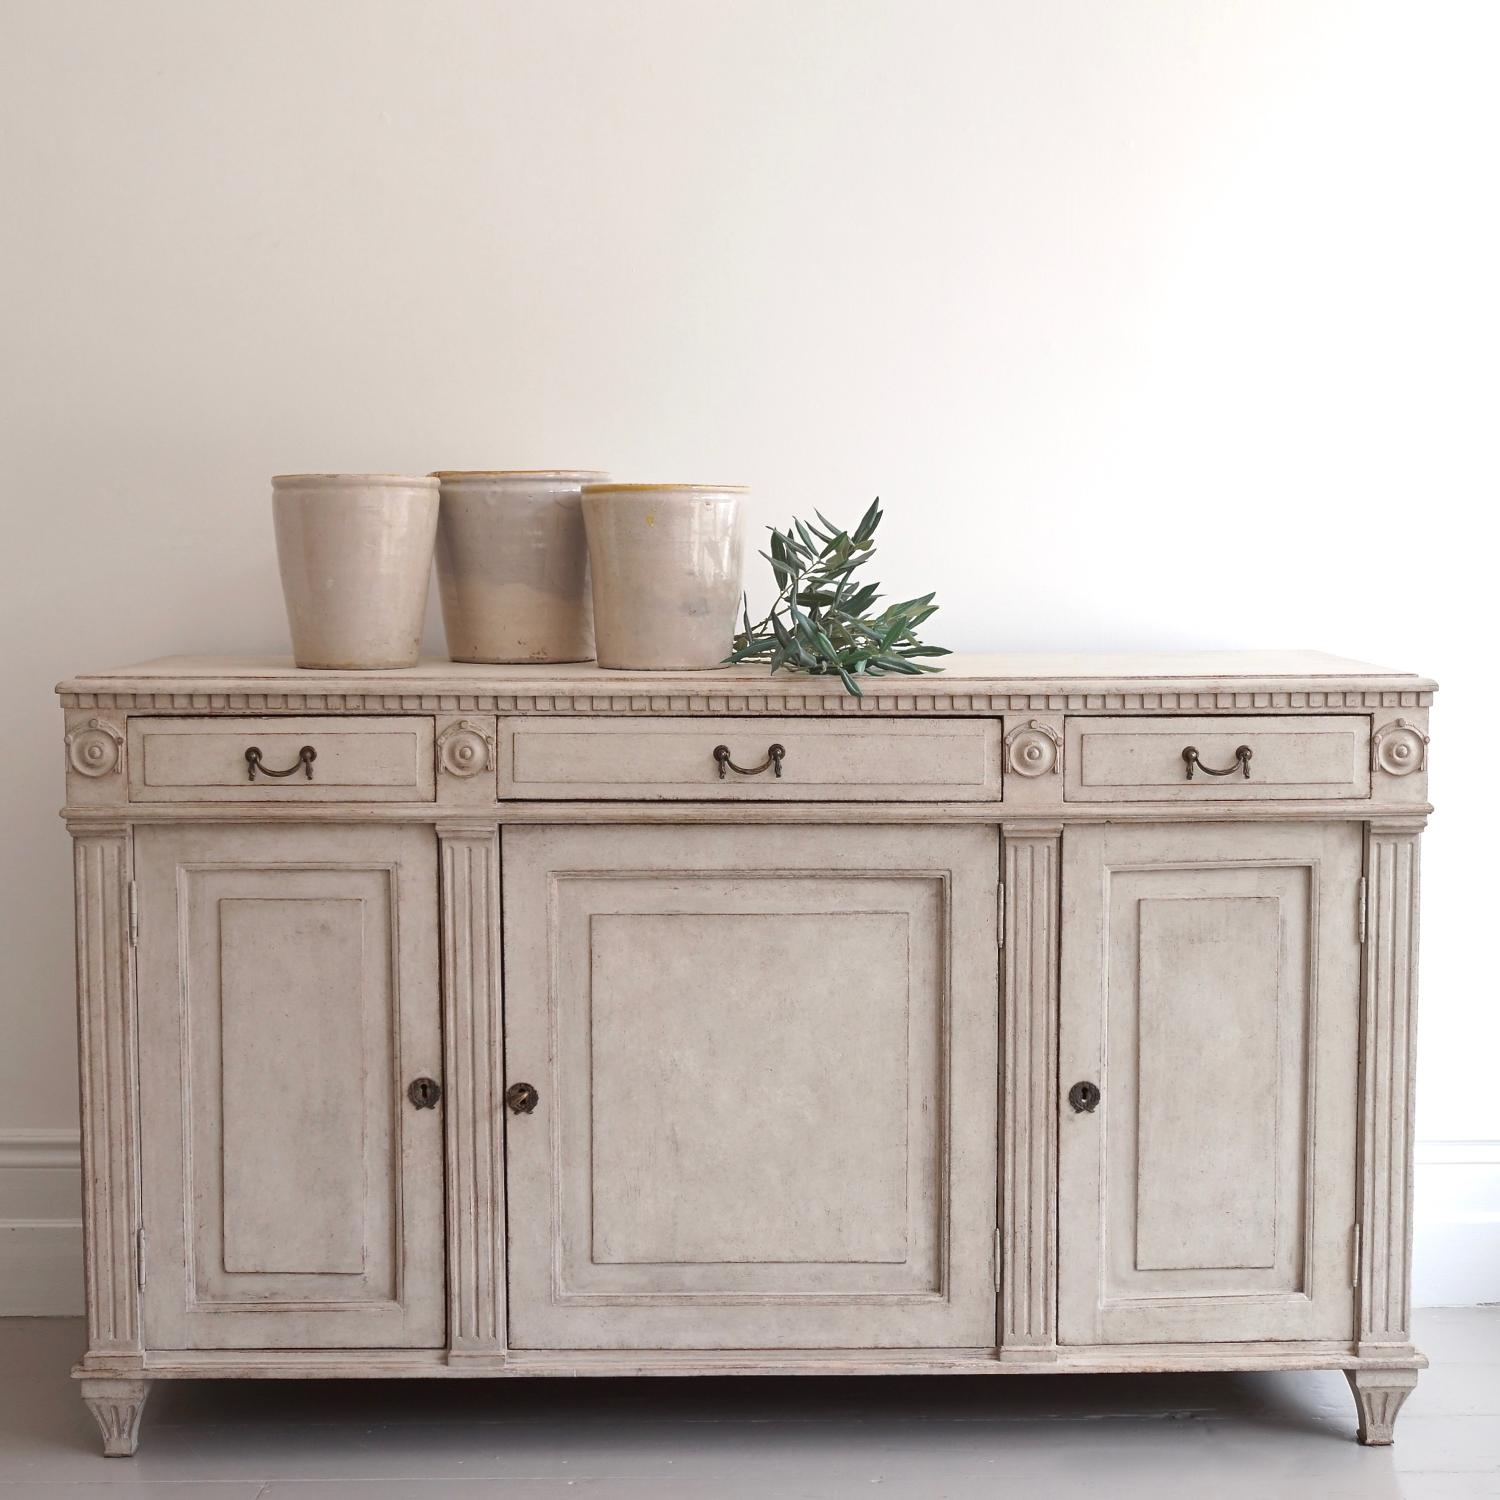 MAGNIFICENT SWEDISH GUSTAVIAN SIDEBOARD